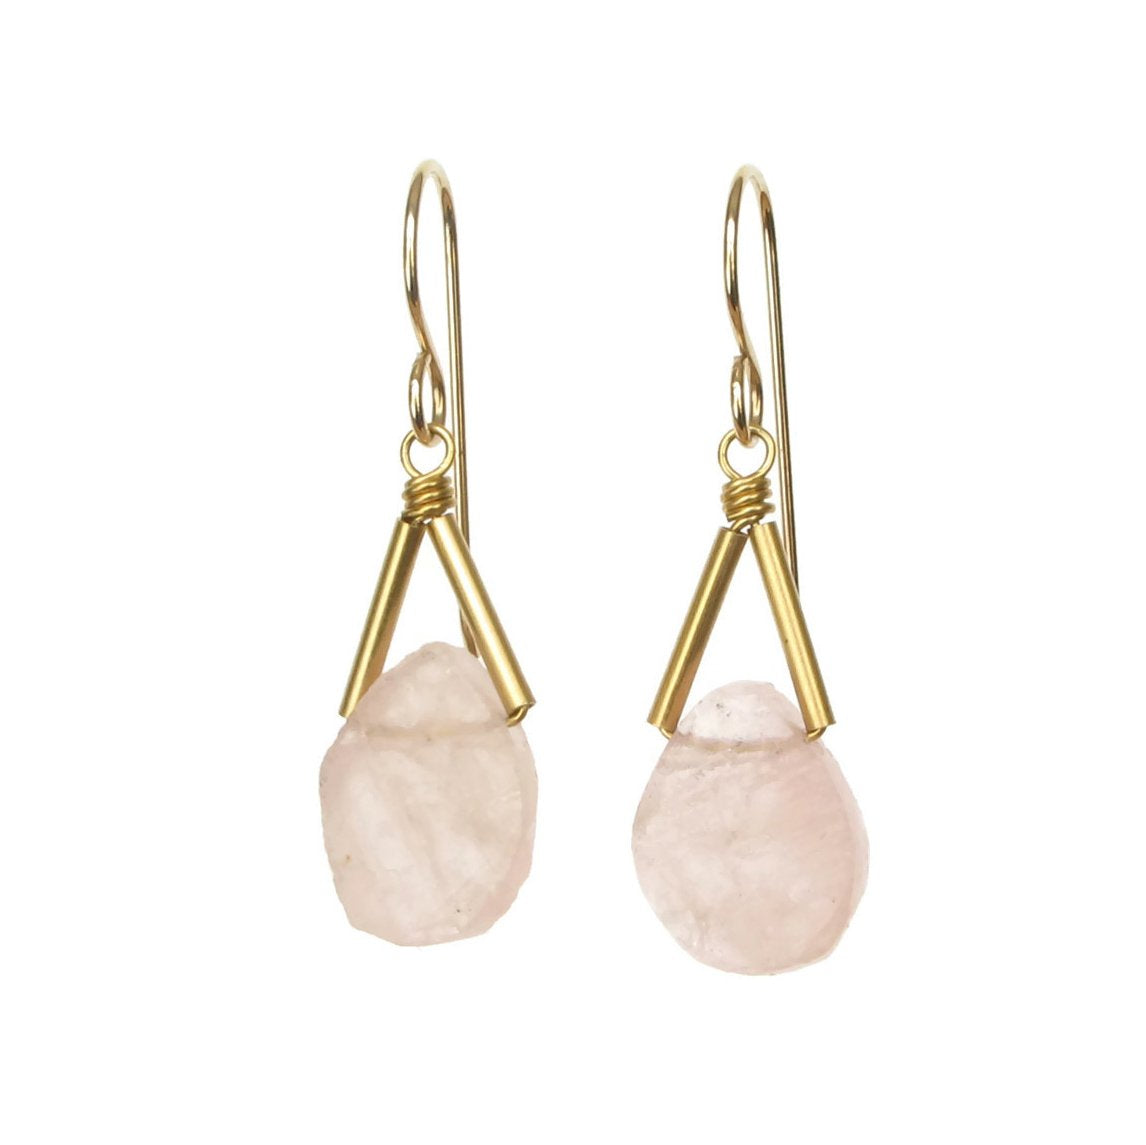 Rio Earrings - Morganite